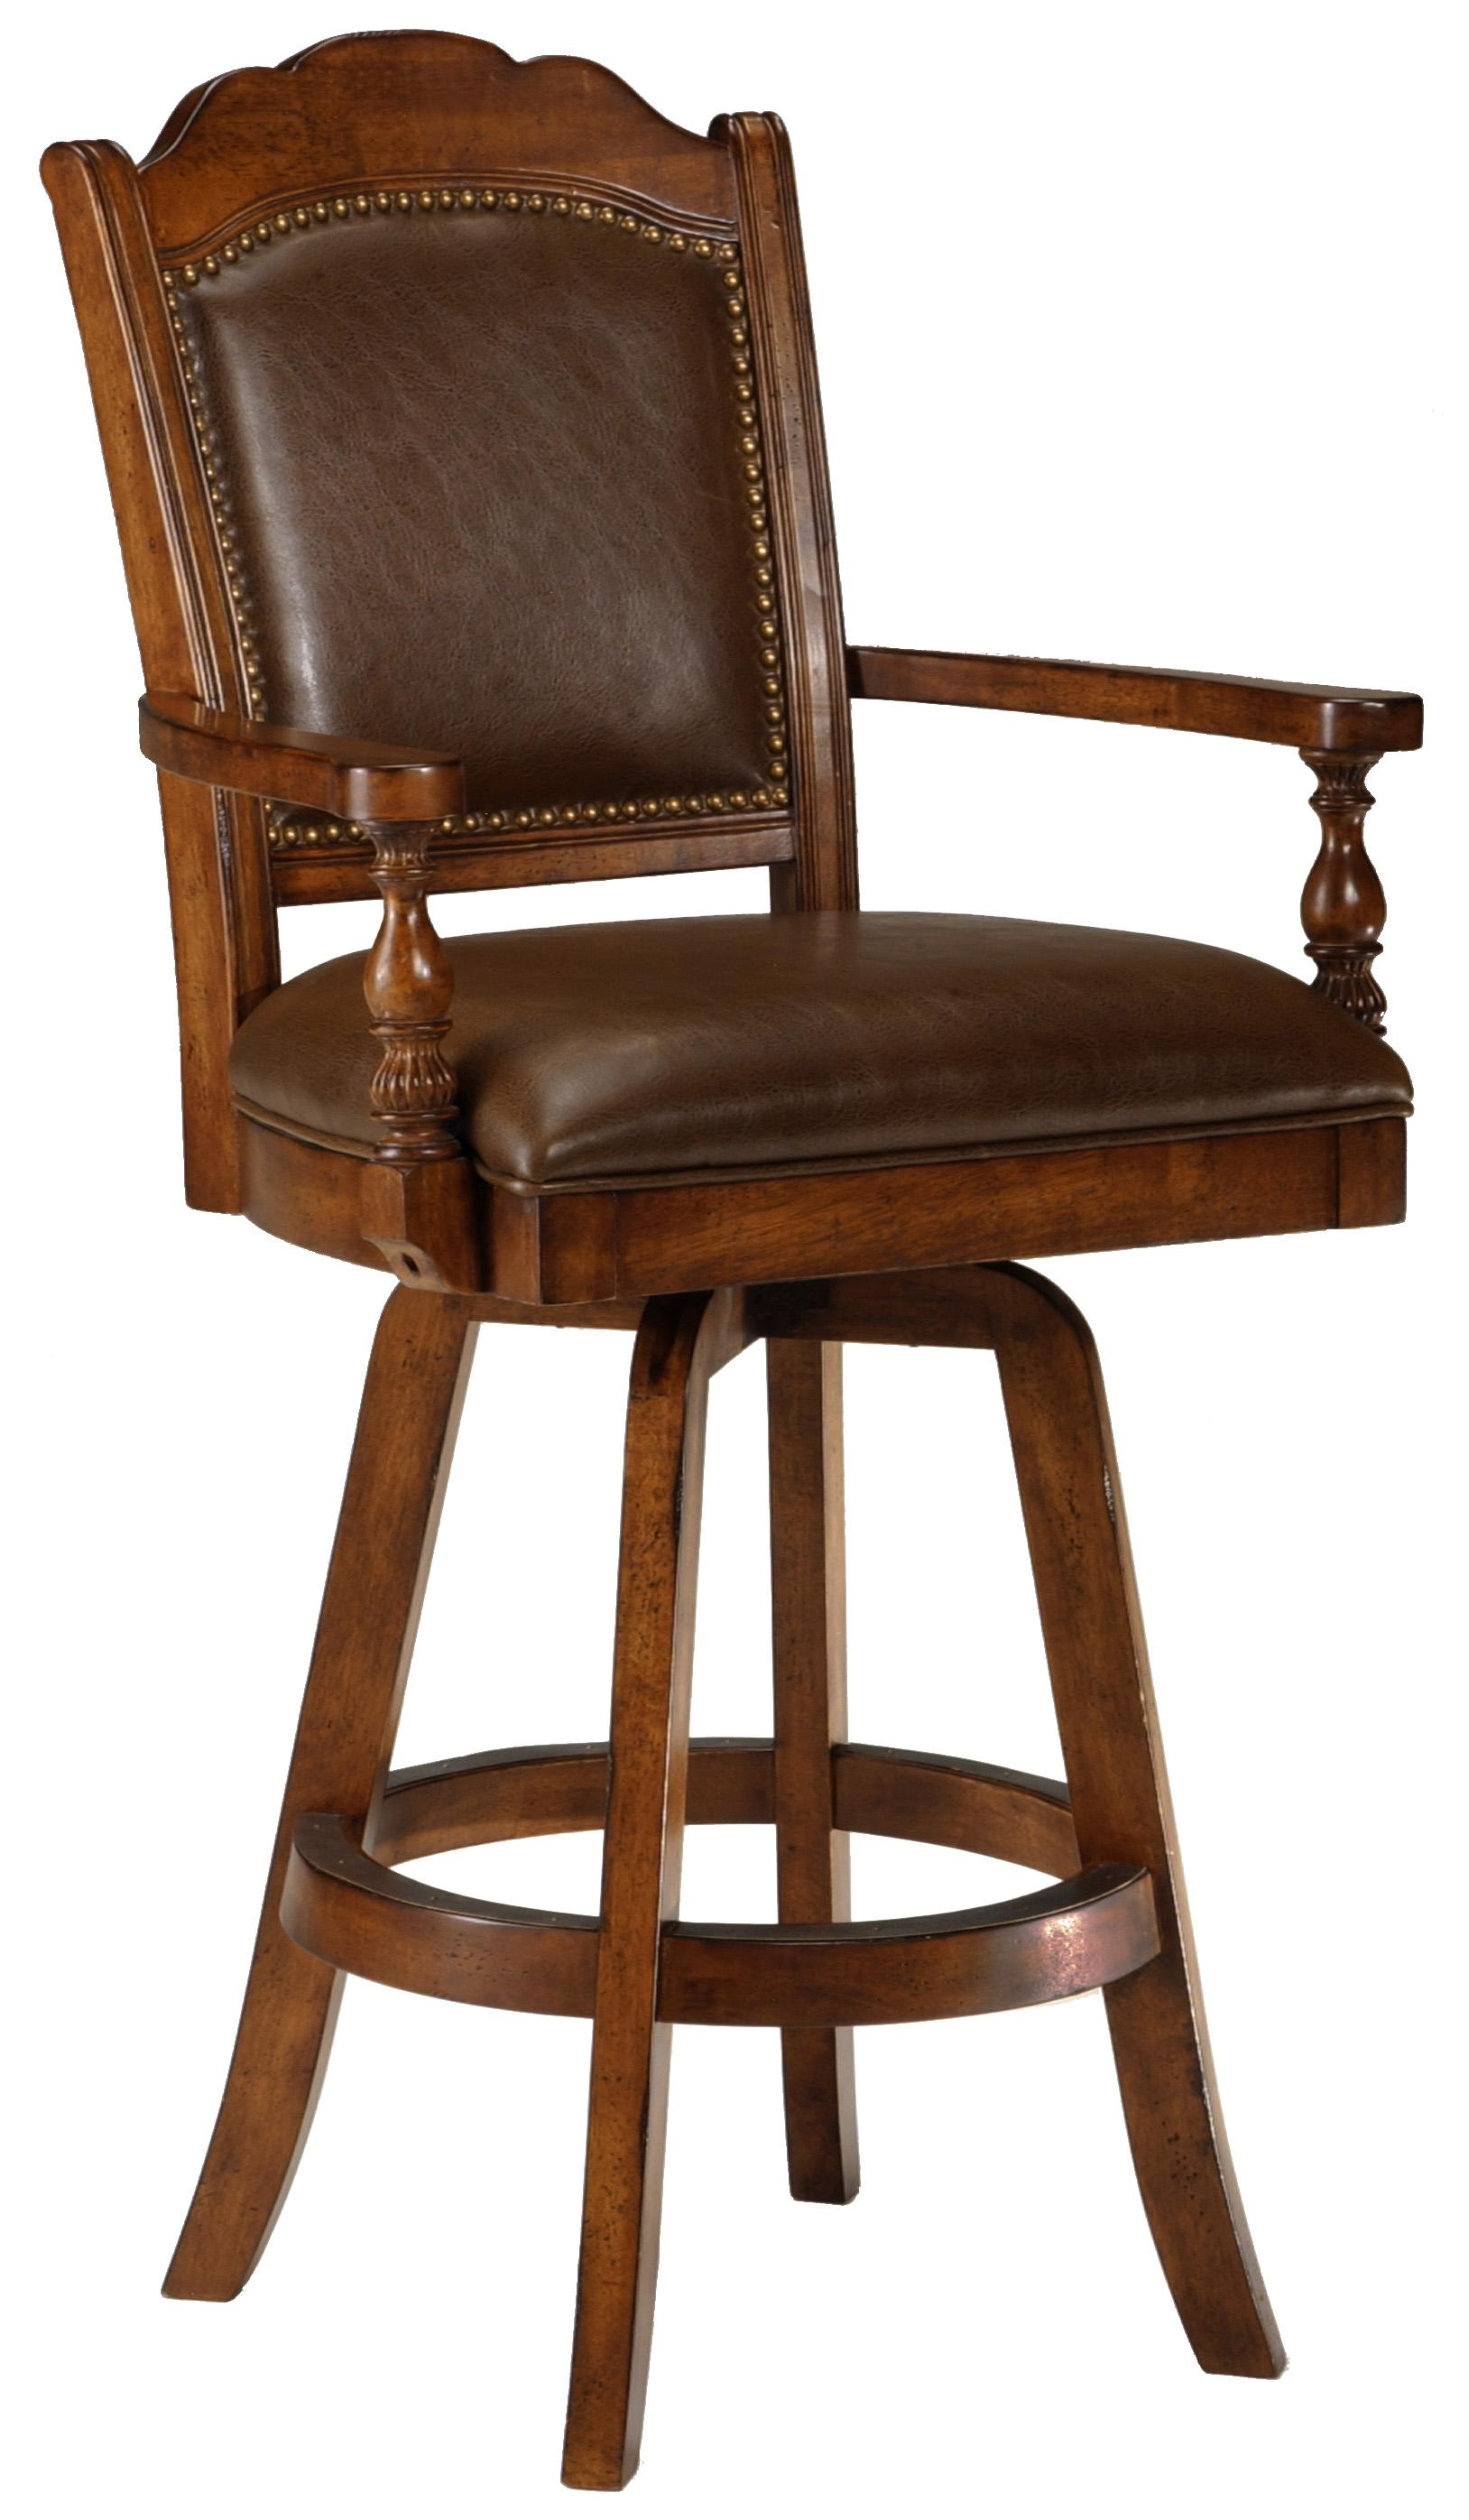 Hillsdale Game Stools & Chairs Nassau Game Stool - Item Number: 6060-801